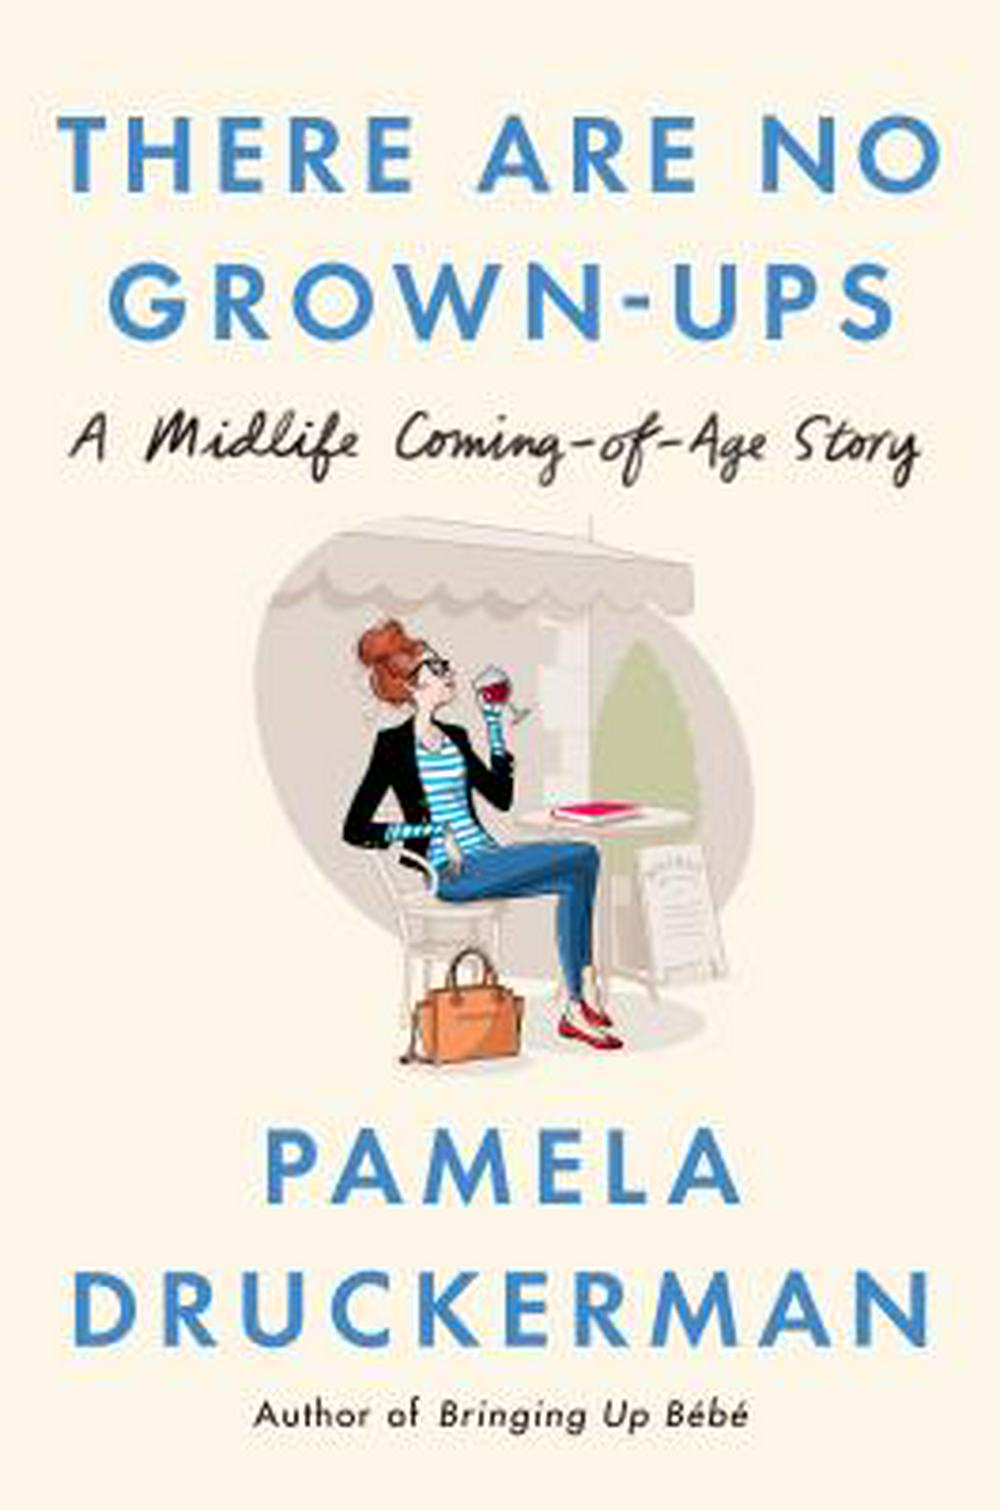 There Are No Grown-ups by Pamela Druckerman, ISBN: 9781594206375